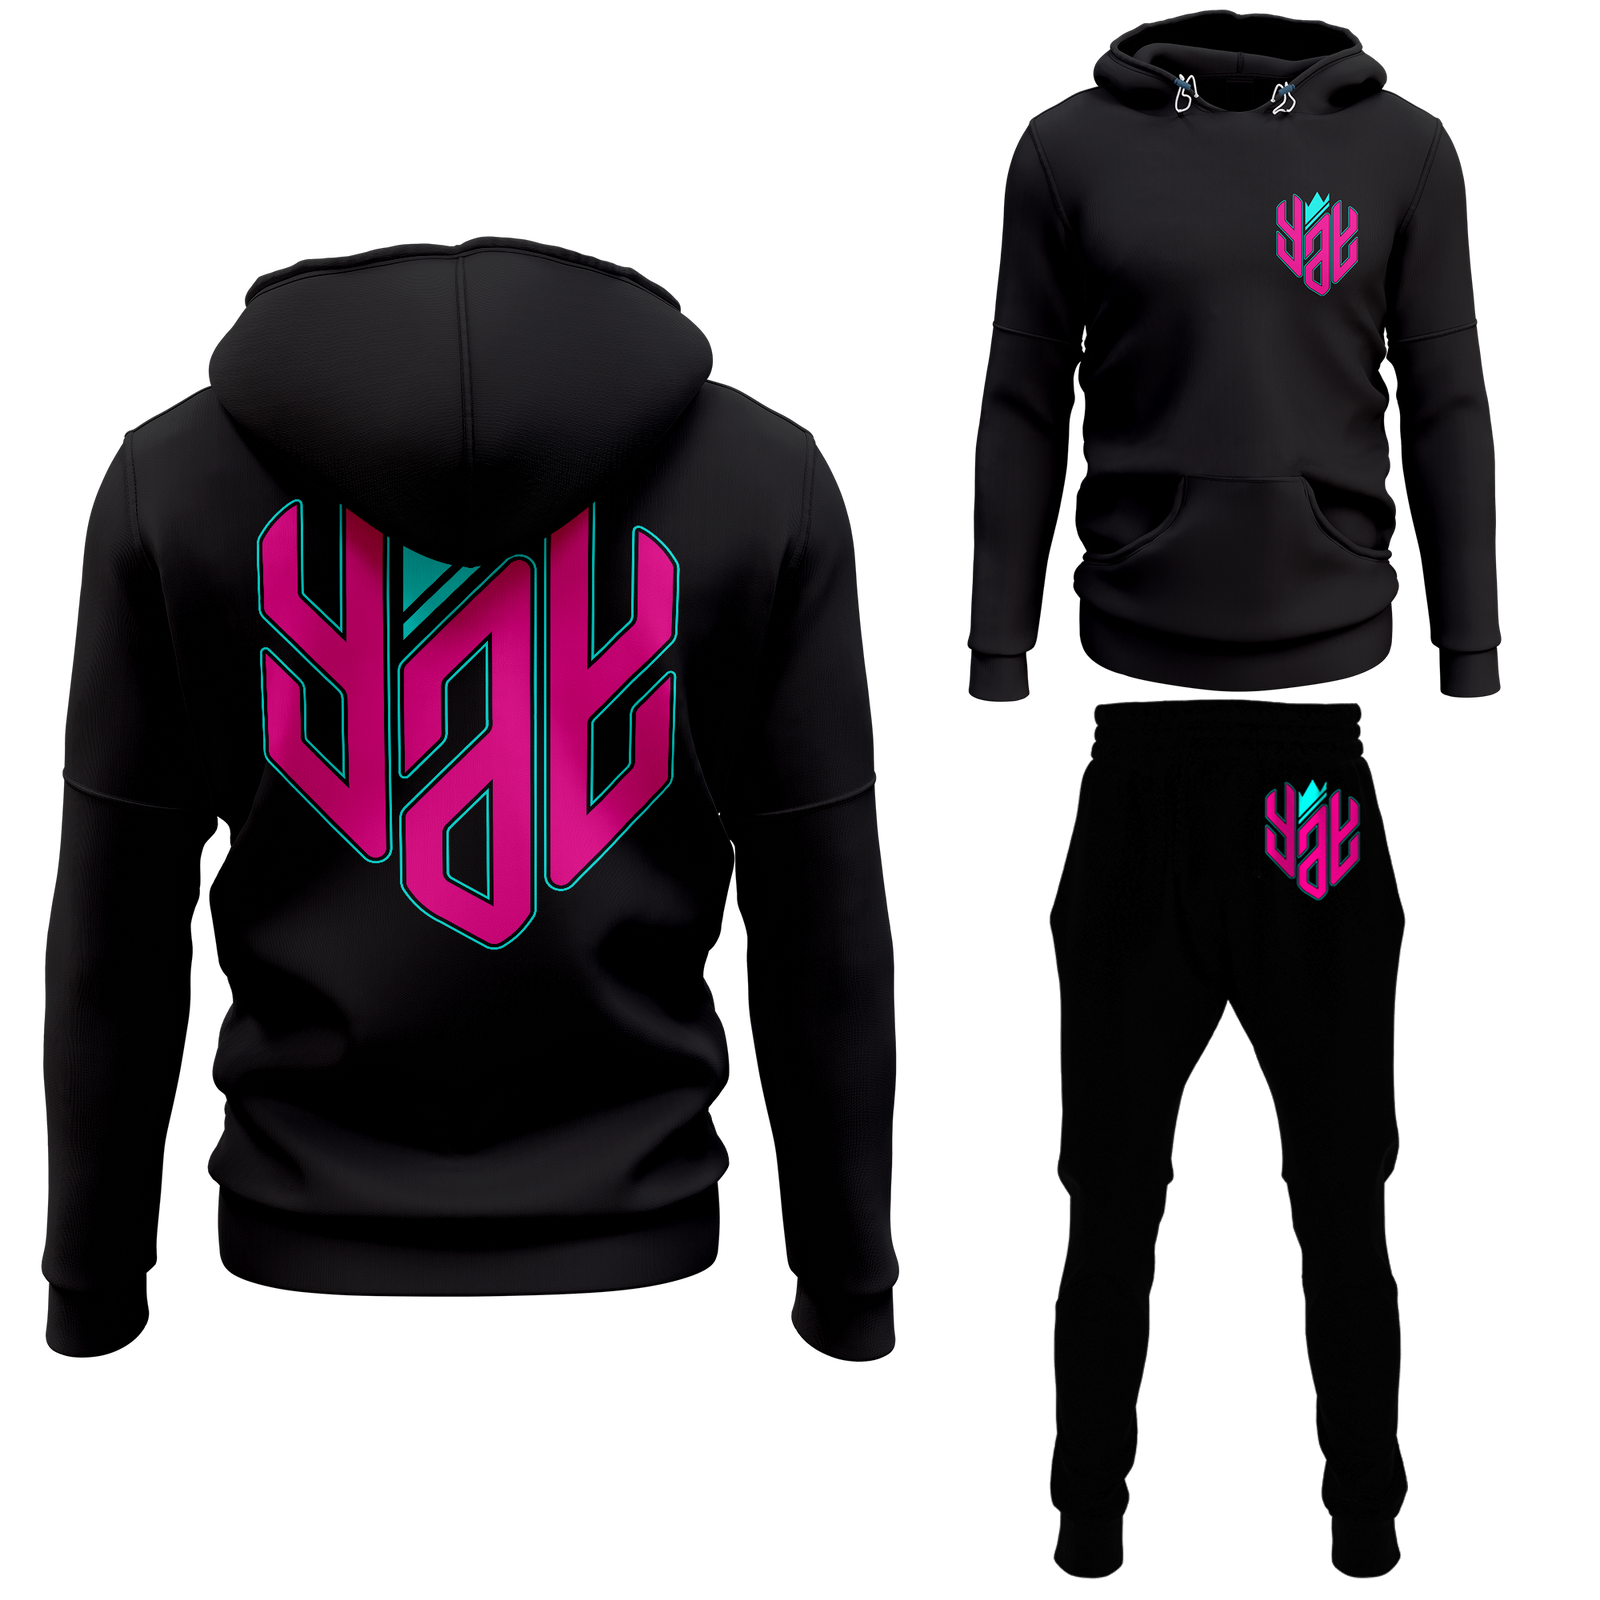 Crowned YAY Pullover Sweatsuit